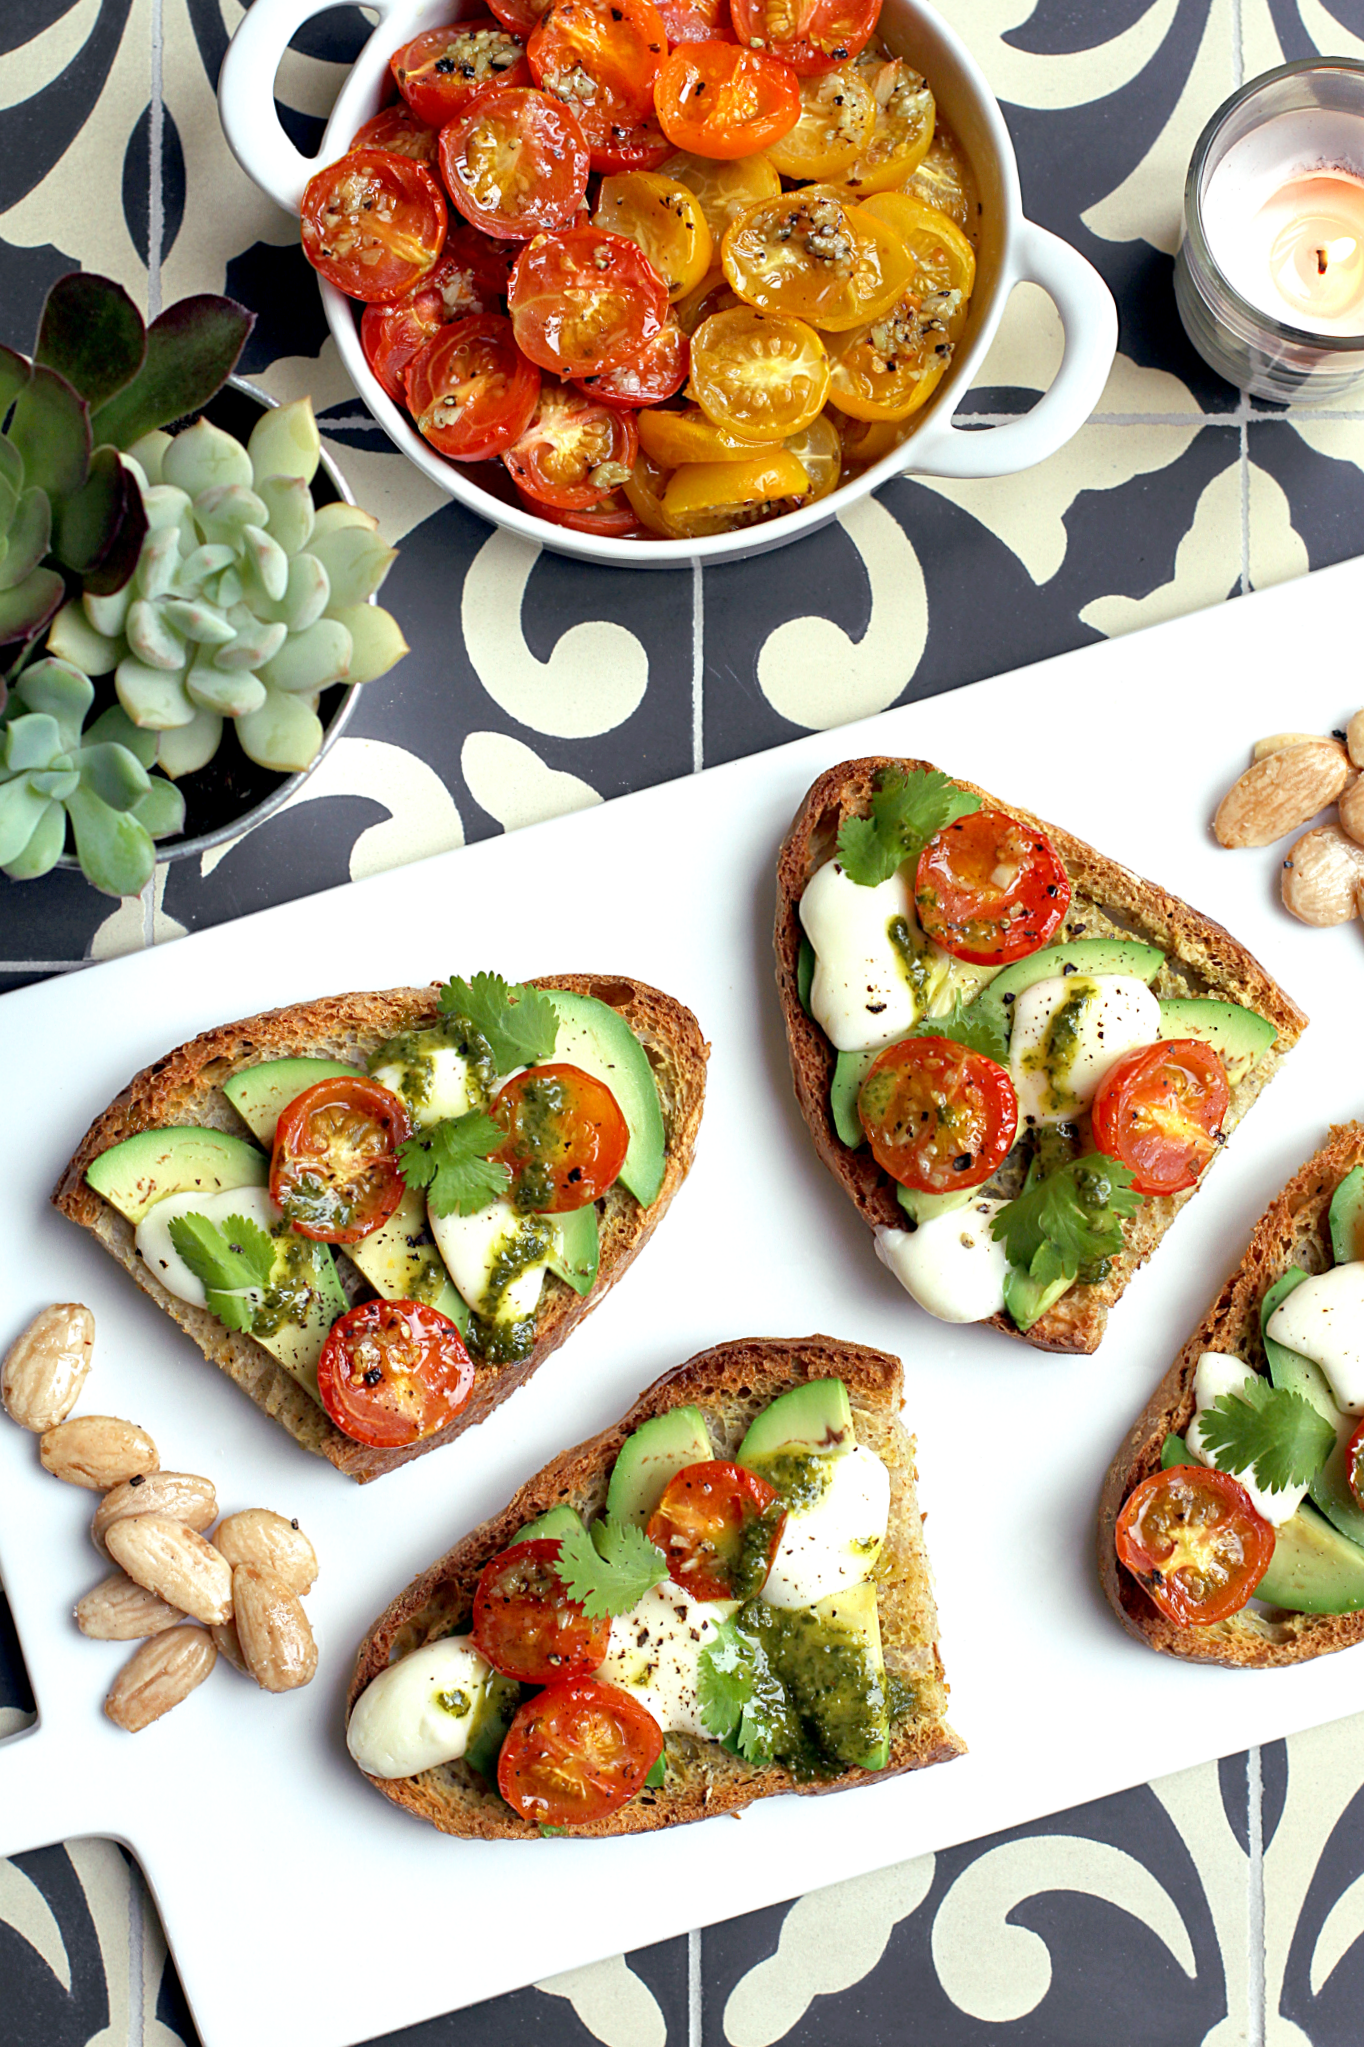 Avocado Bruschetta With Green Sauce Recipes — Dishmaps